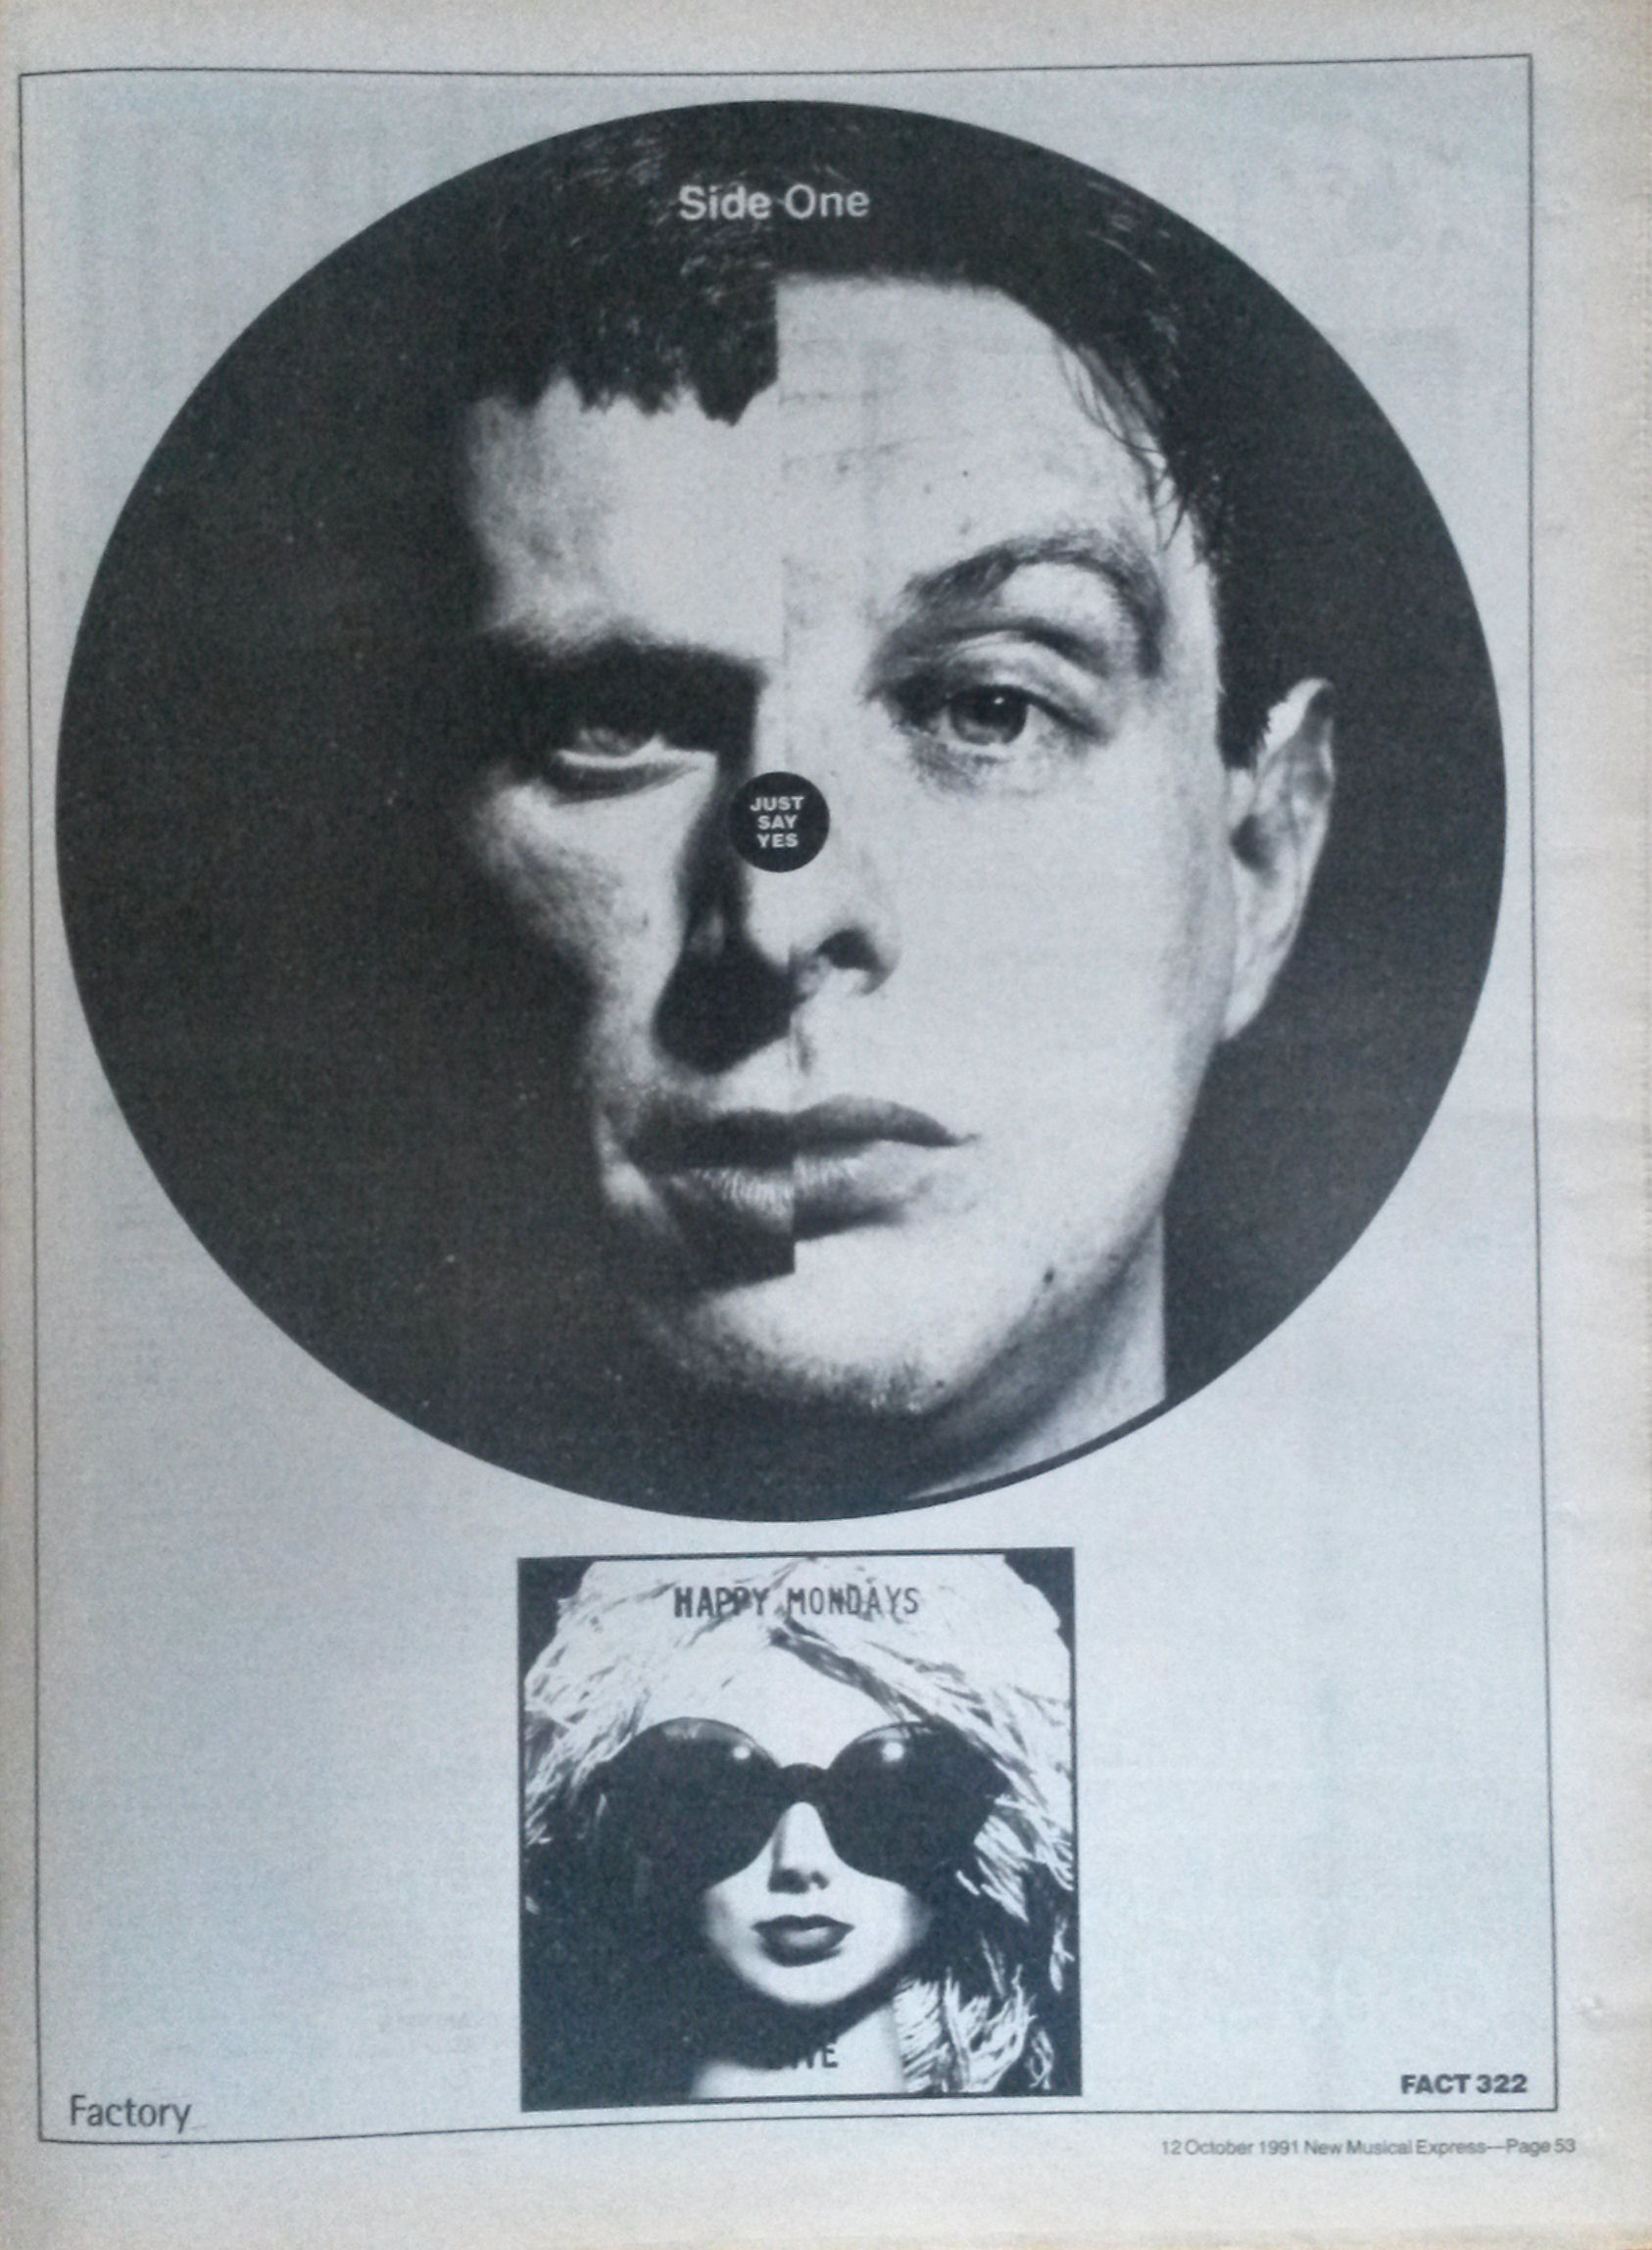 NME ad